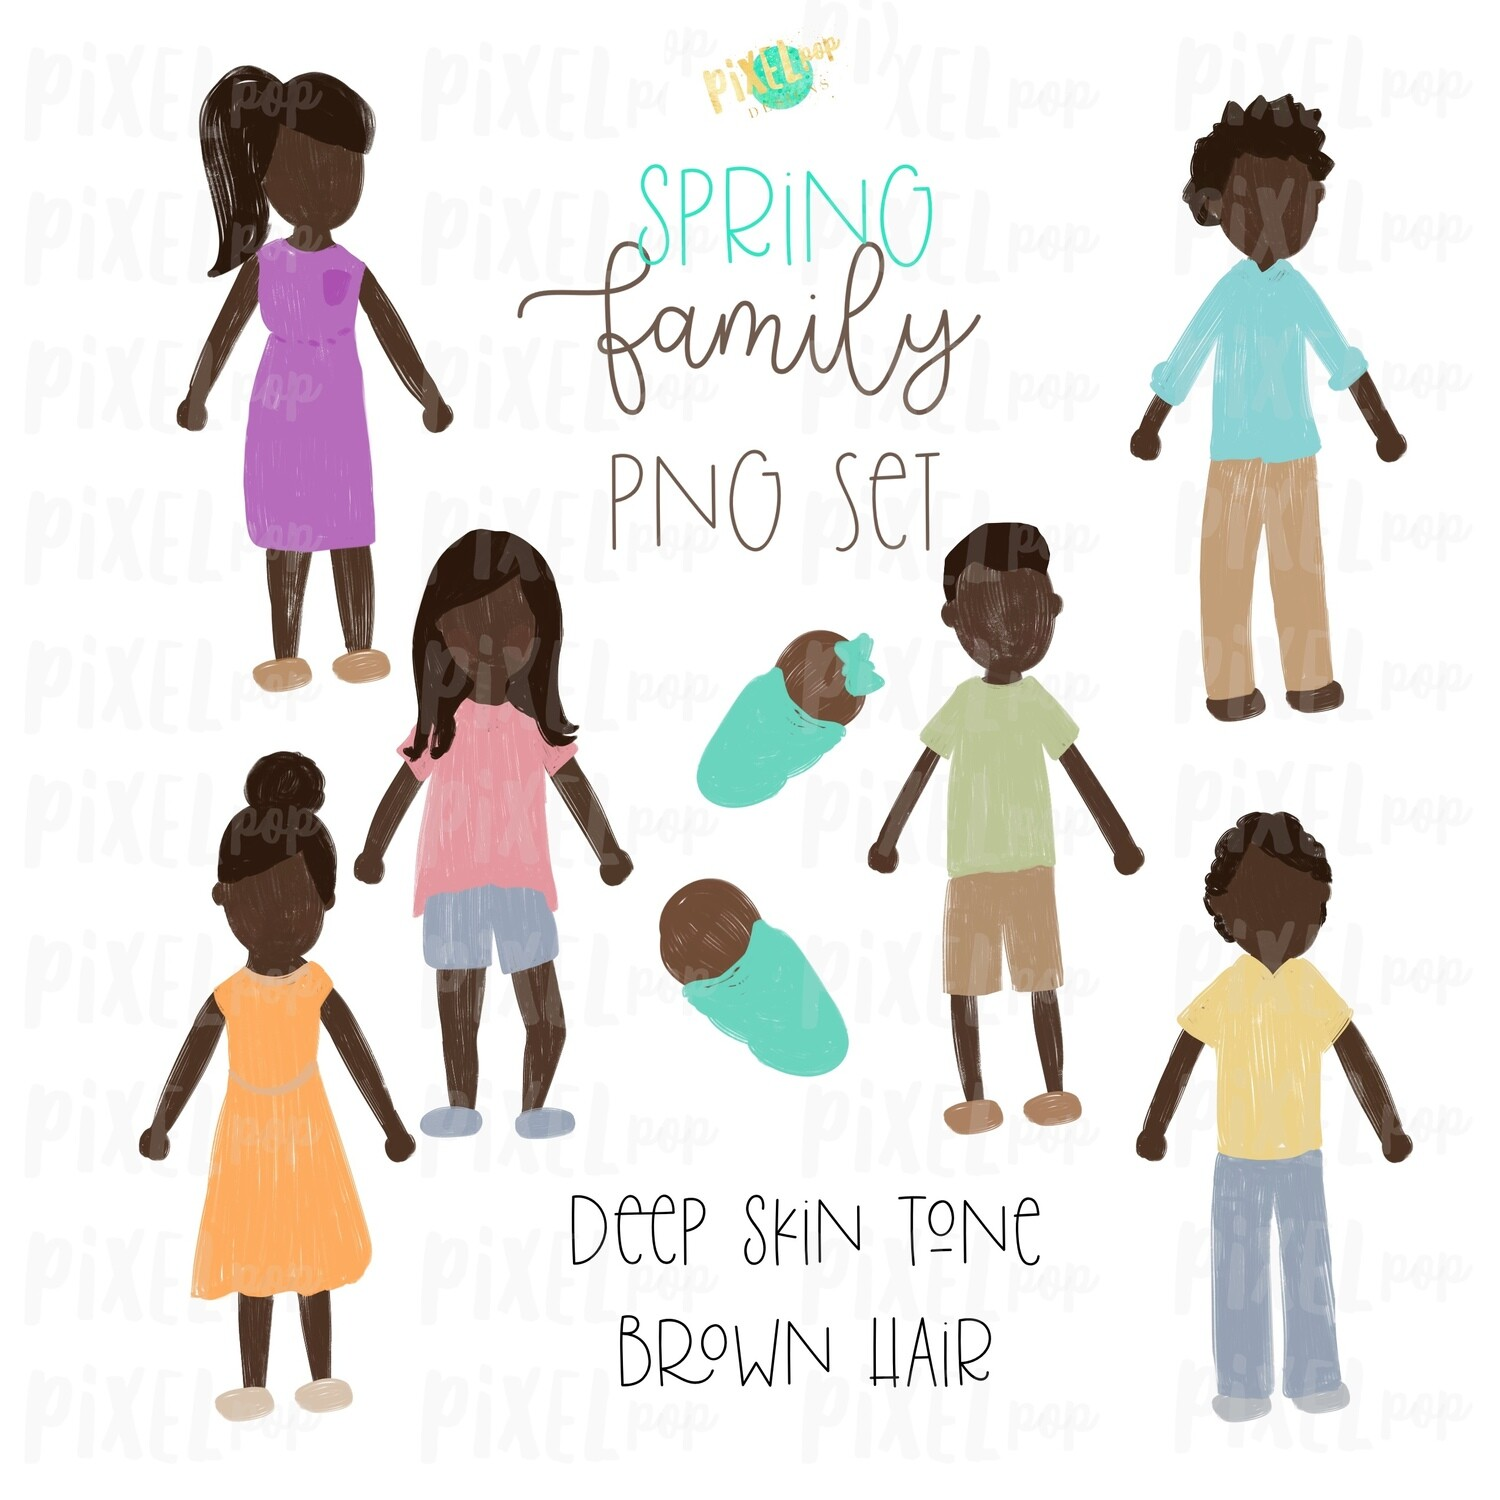 SPRING Deep Skin Brown Hair Stick People Figure Family PNG Sublimation | Family Ornament | Family Portrait Images | Digital Download